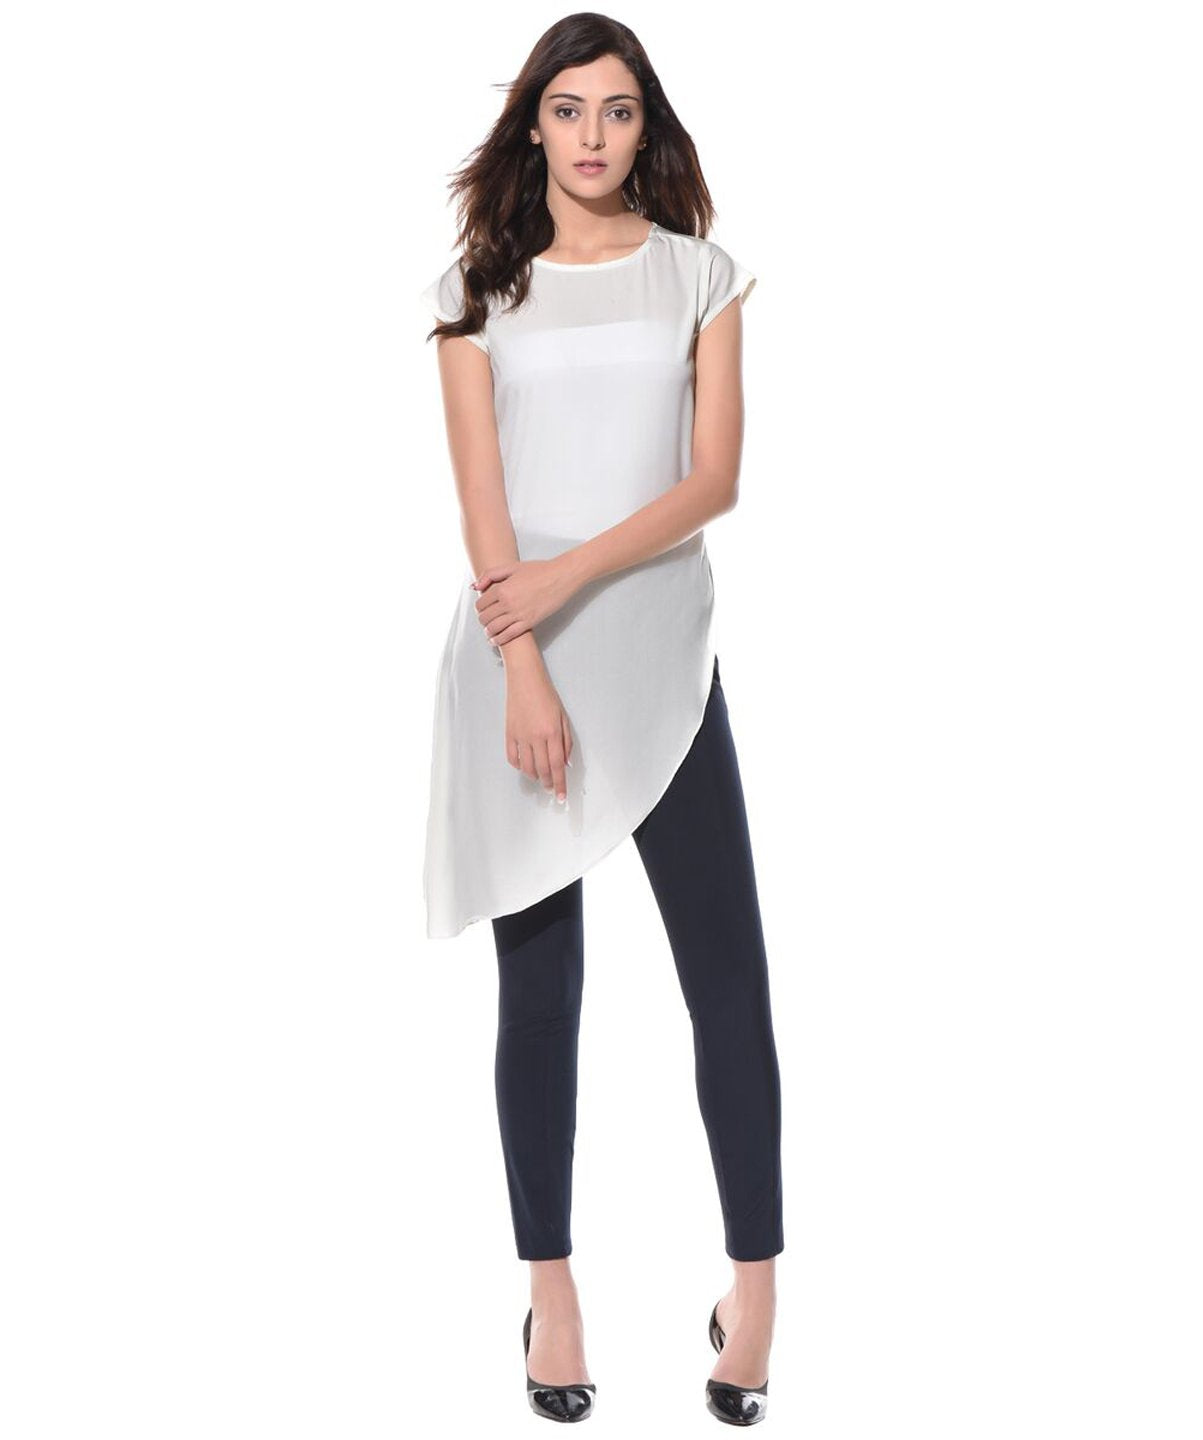 Uptownie White Solid Side-Slit Casual Crepe Top 1 trendsale